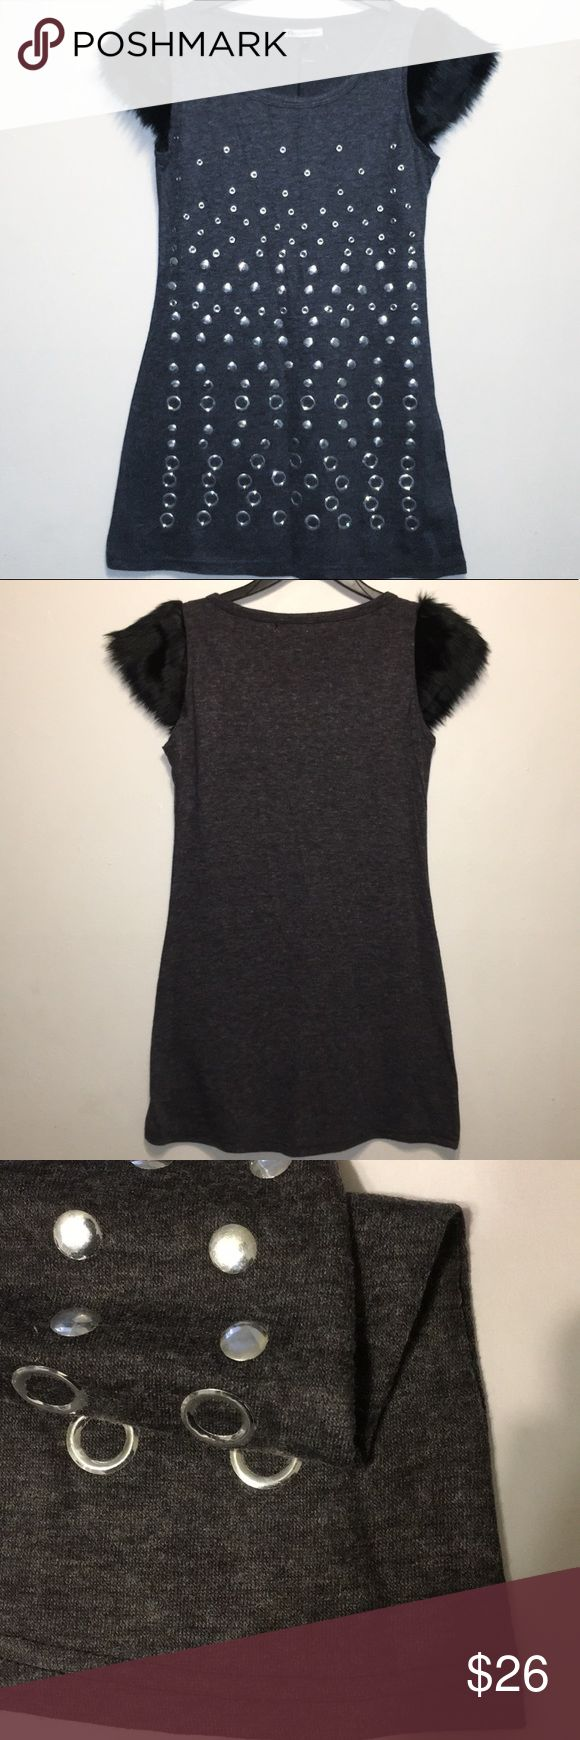 Boutique Brand SMALL Studded Faux Fur Mini Dress ~ Studded Faux Fur Mini Dress ~  Brand: Boutique Brand Size: SMALL Material: Cotton & man-made Faux Fur  condition: NWT, New with tags.   MEASUREMENTS Length:  30in Underarm to underarm: 16in  Thanks for looking! Gioia Dresses Mini